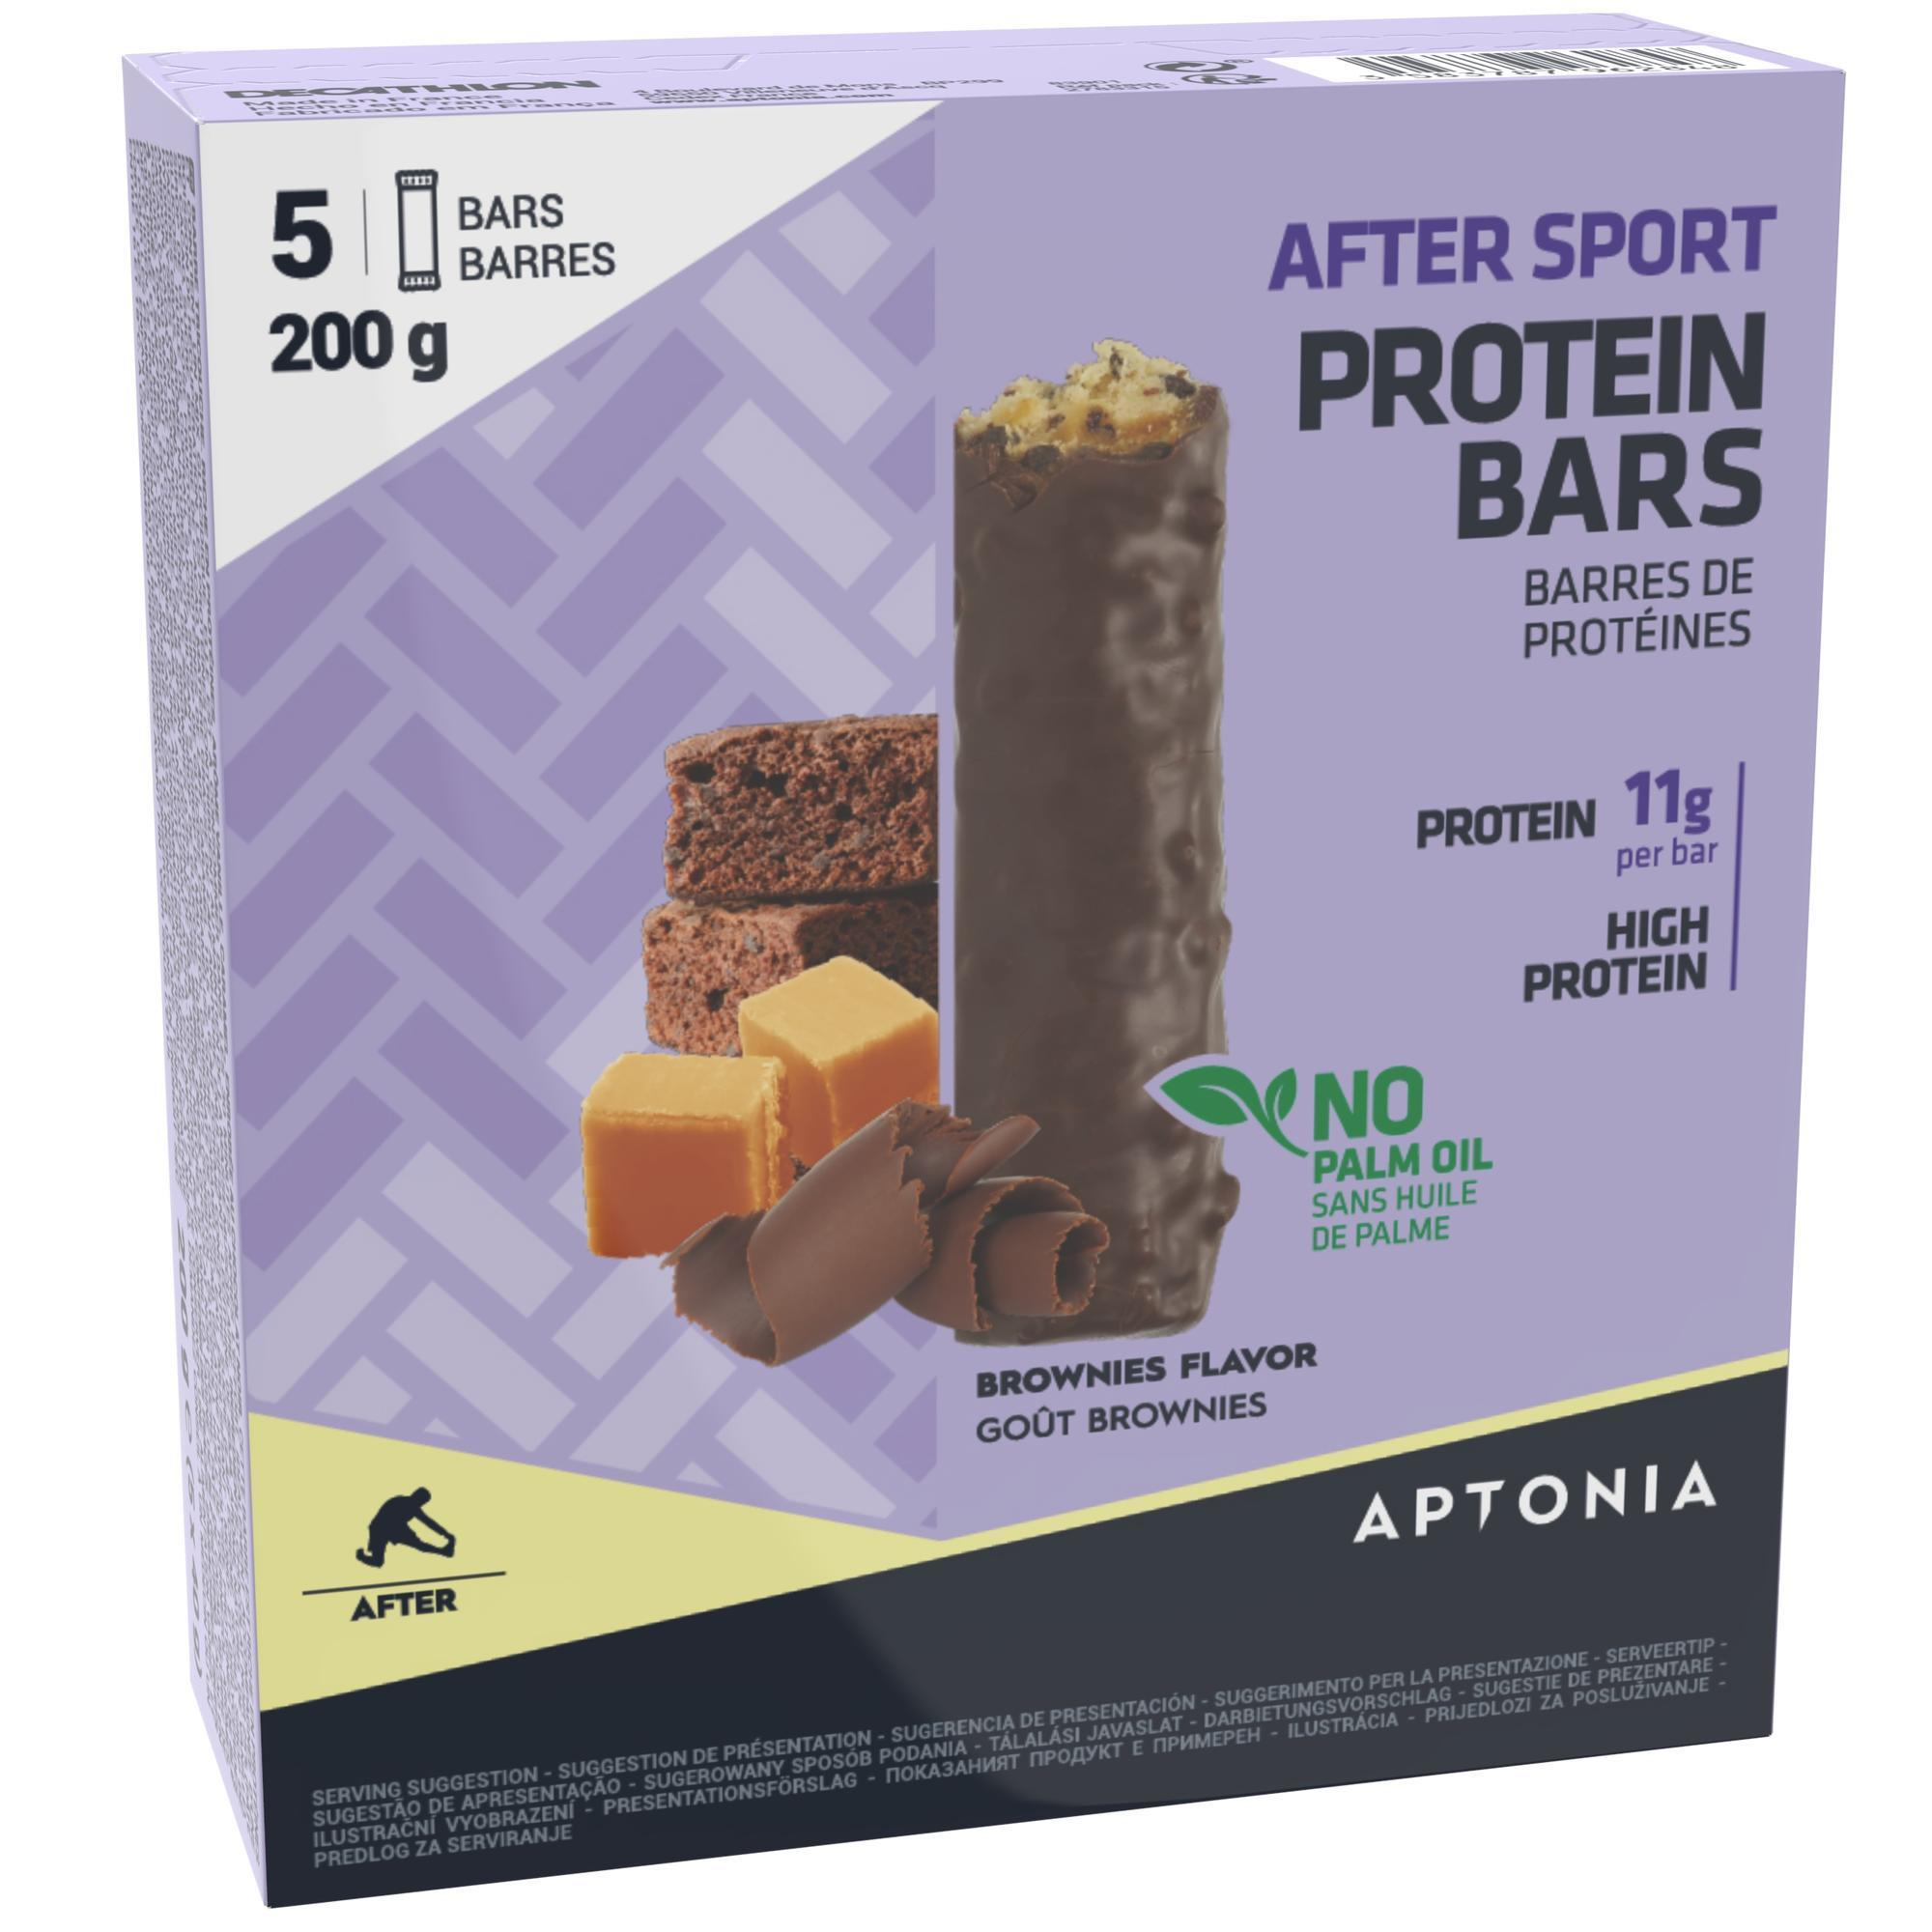 Proteinriegel Eiweißriegel AFTER SPORT Brownies 5 נ40 g